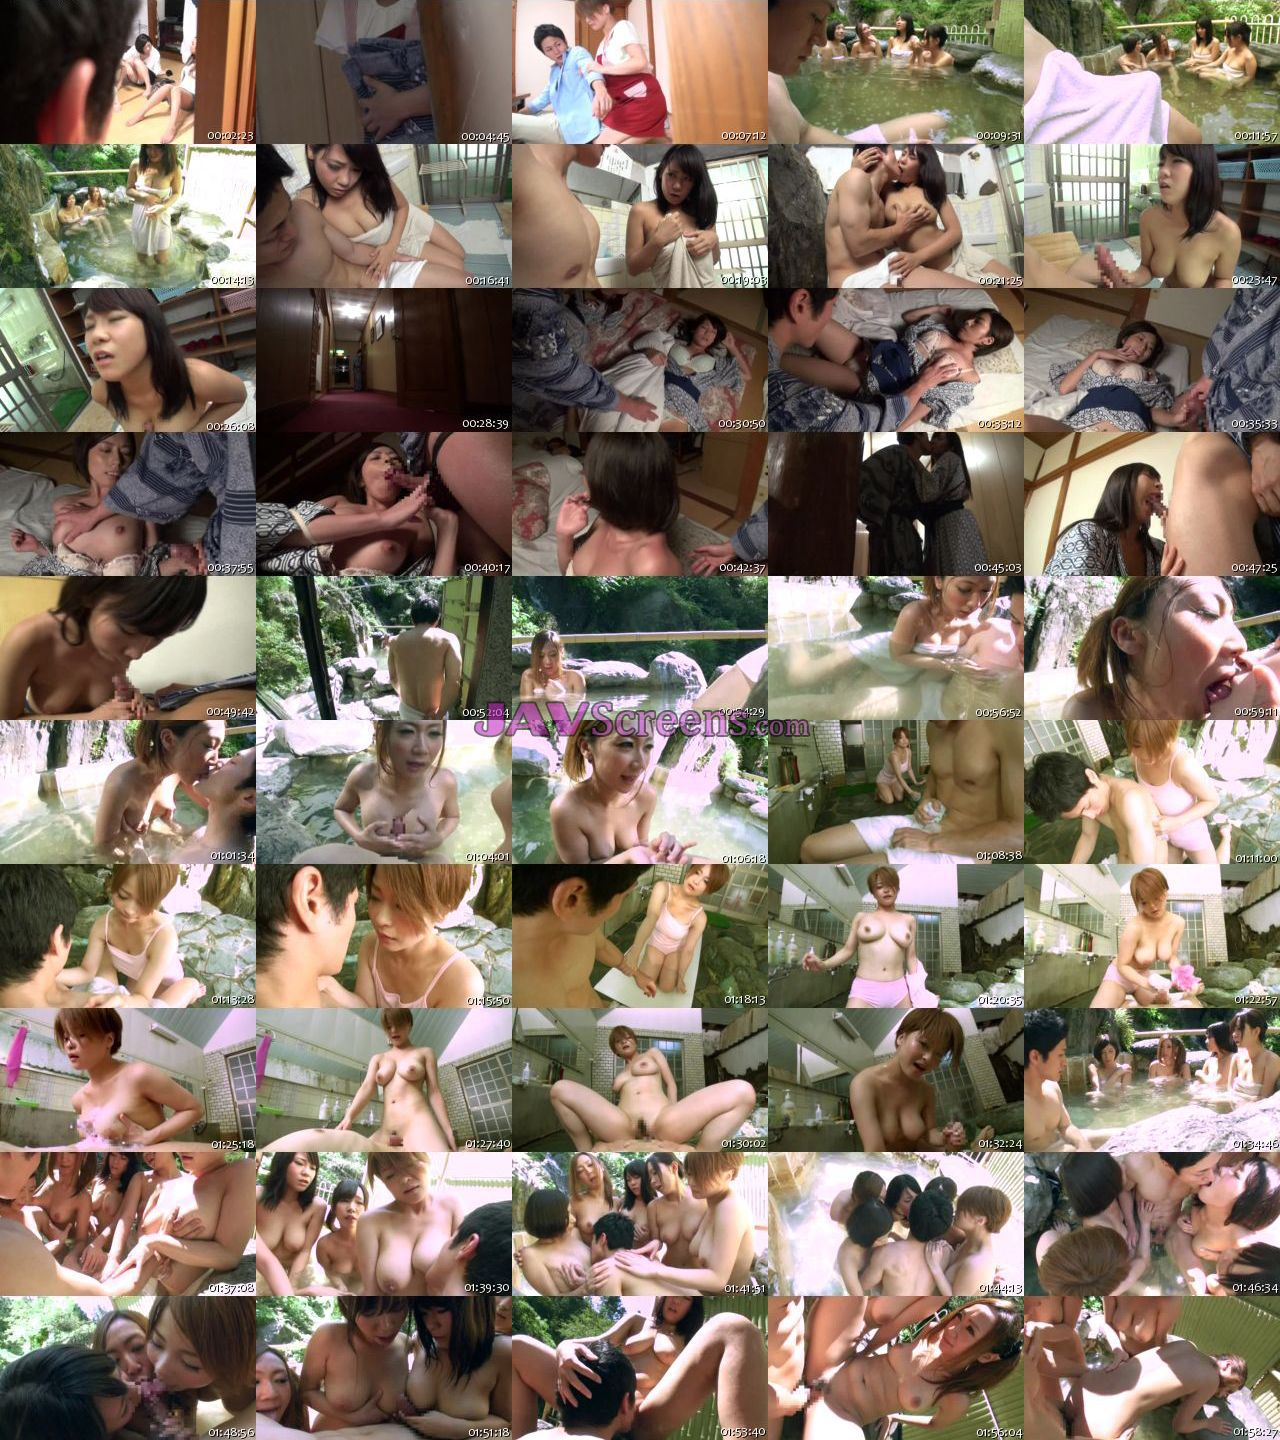 SW-149.jpg - JAV Screenshot